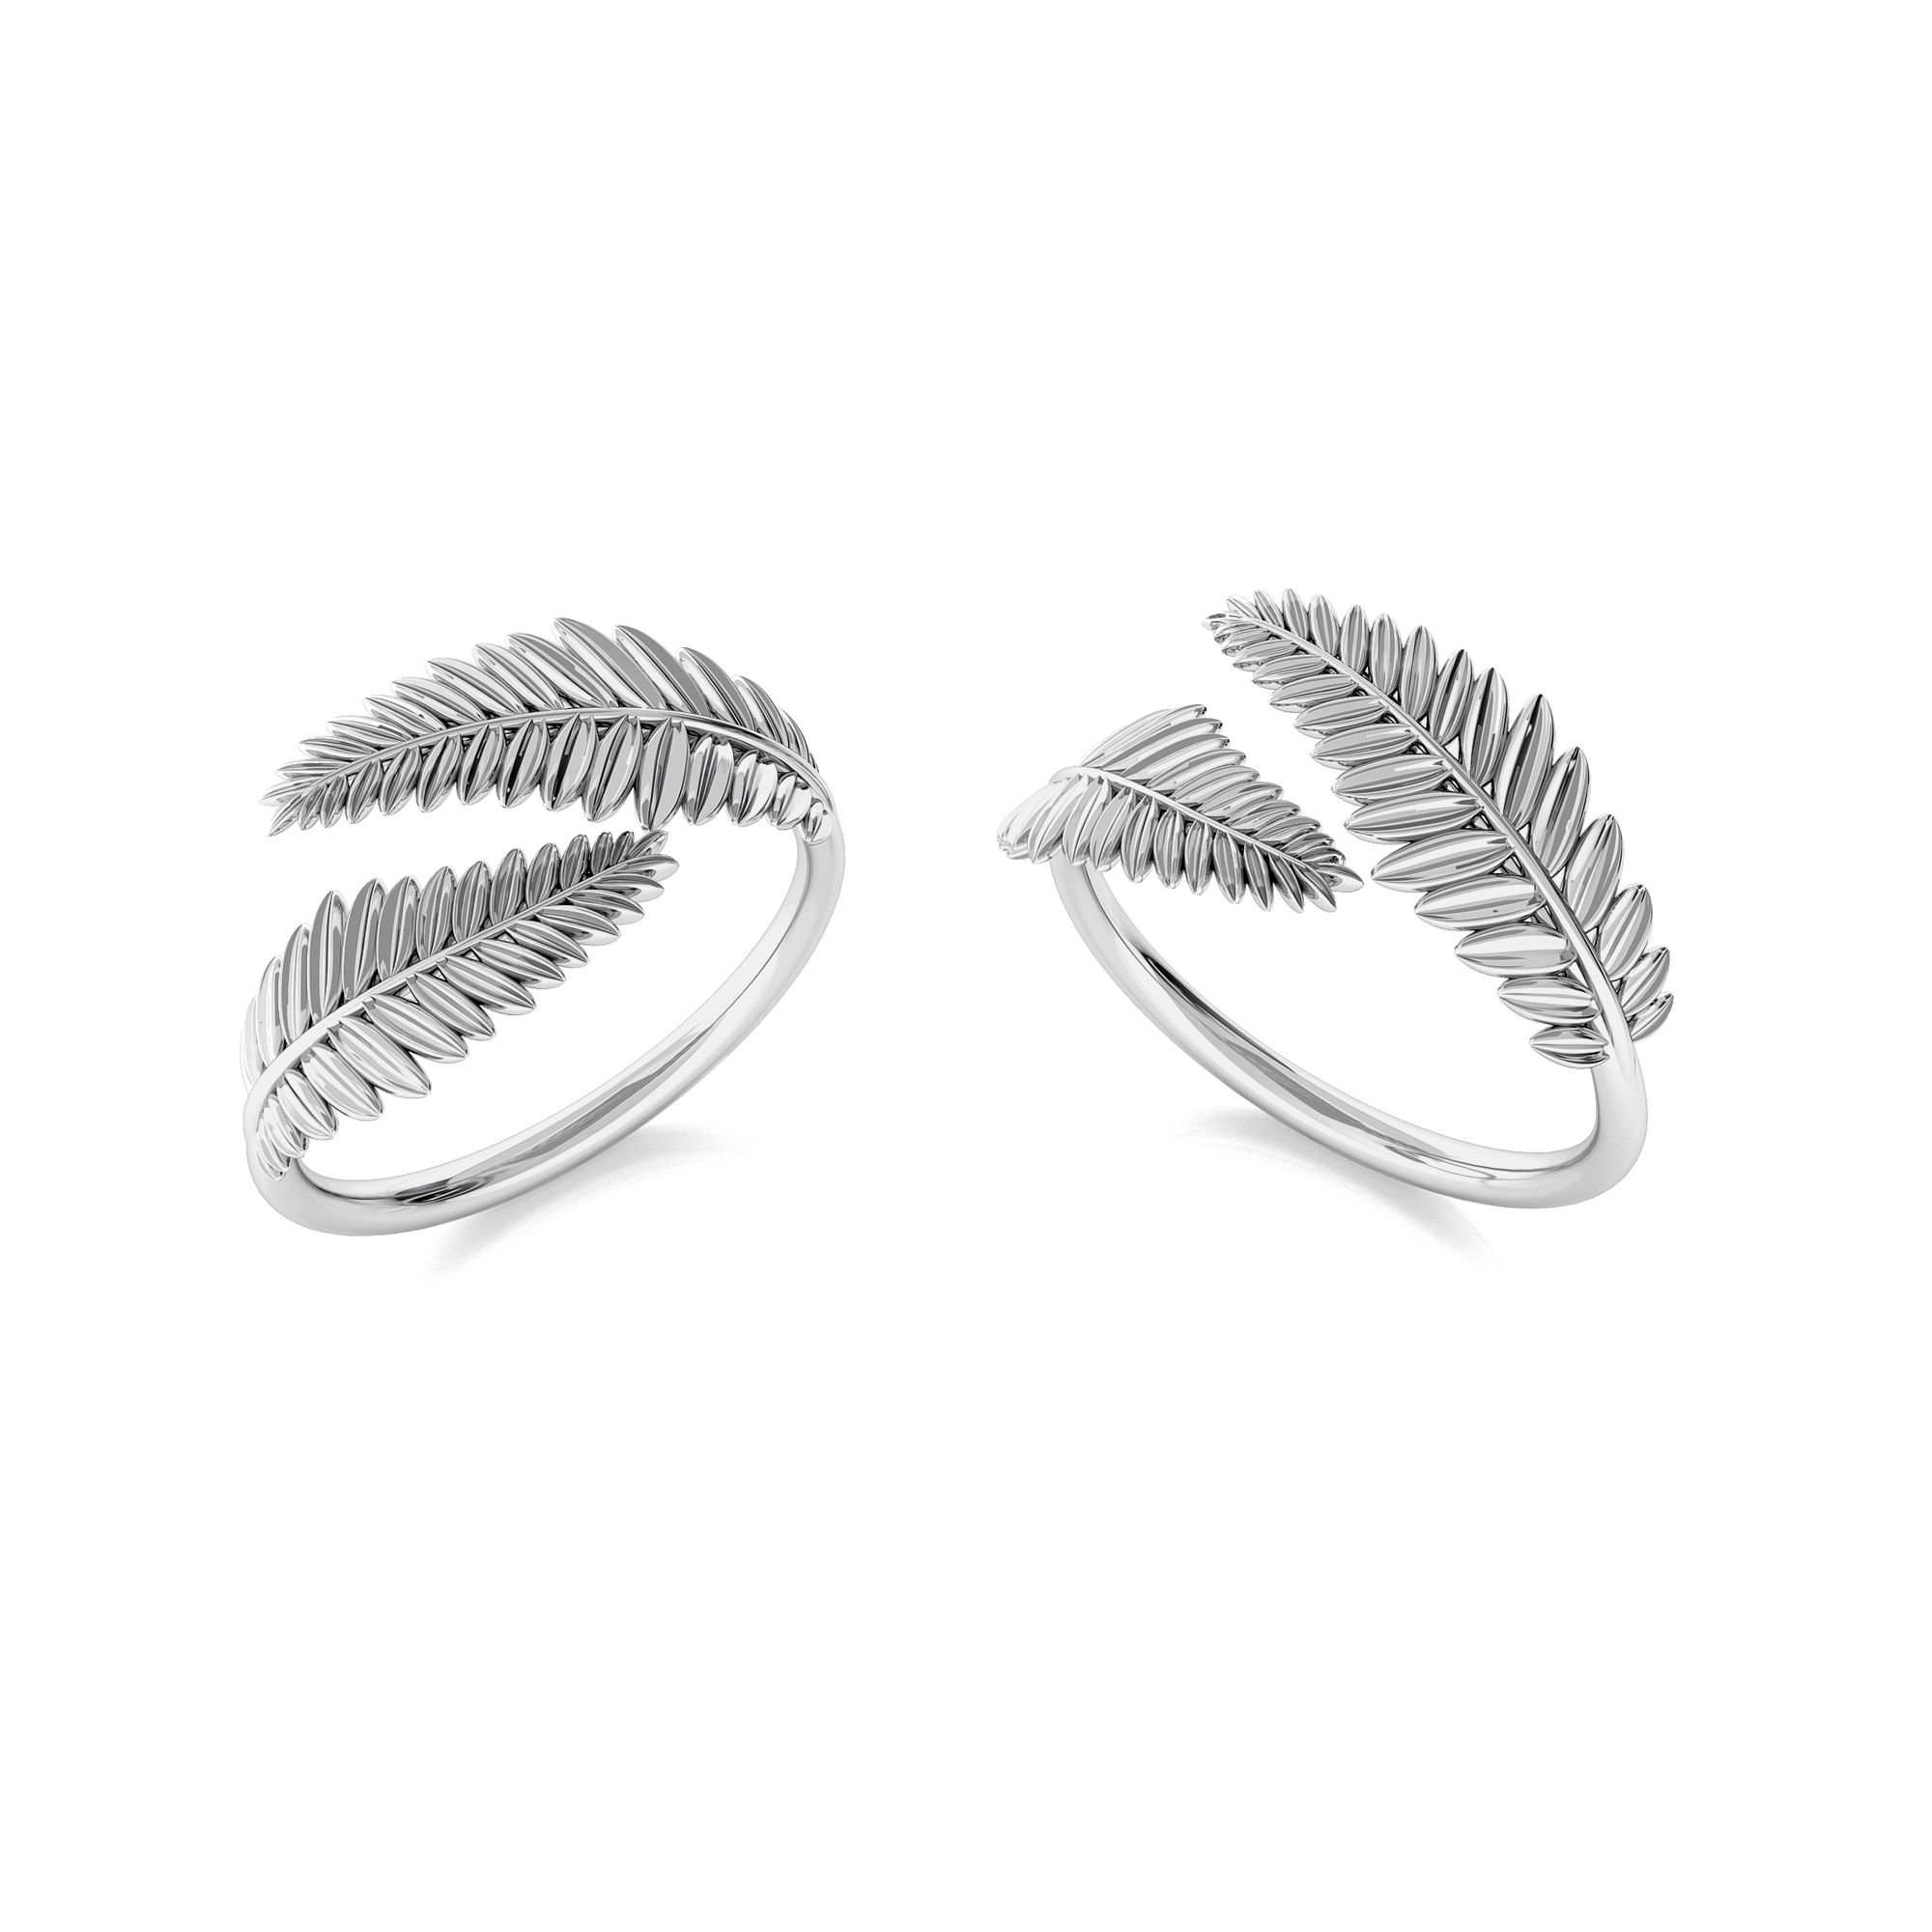 Angel WING ring, silver 925